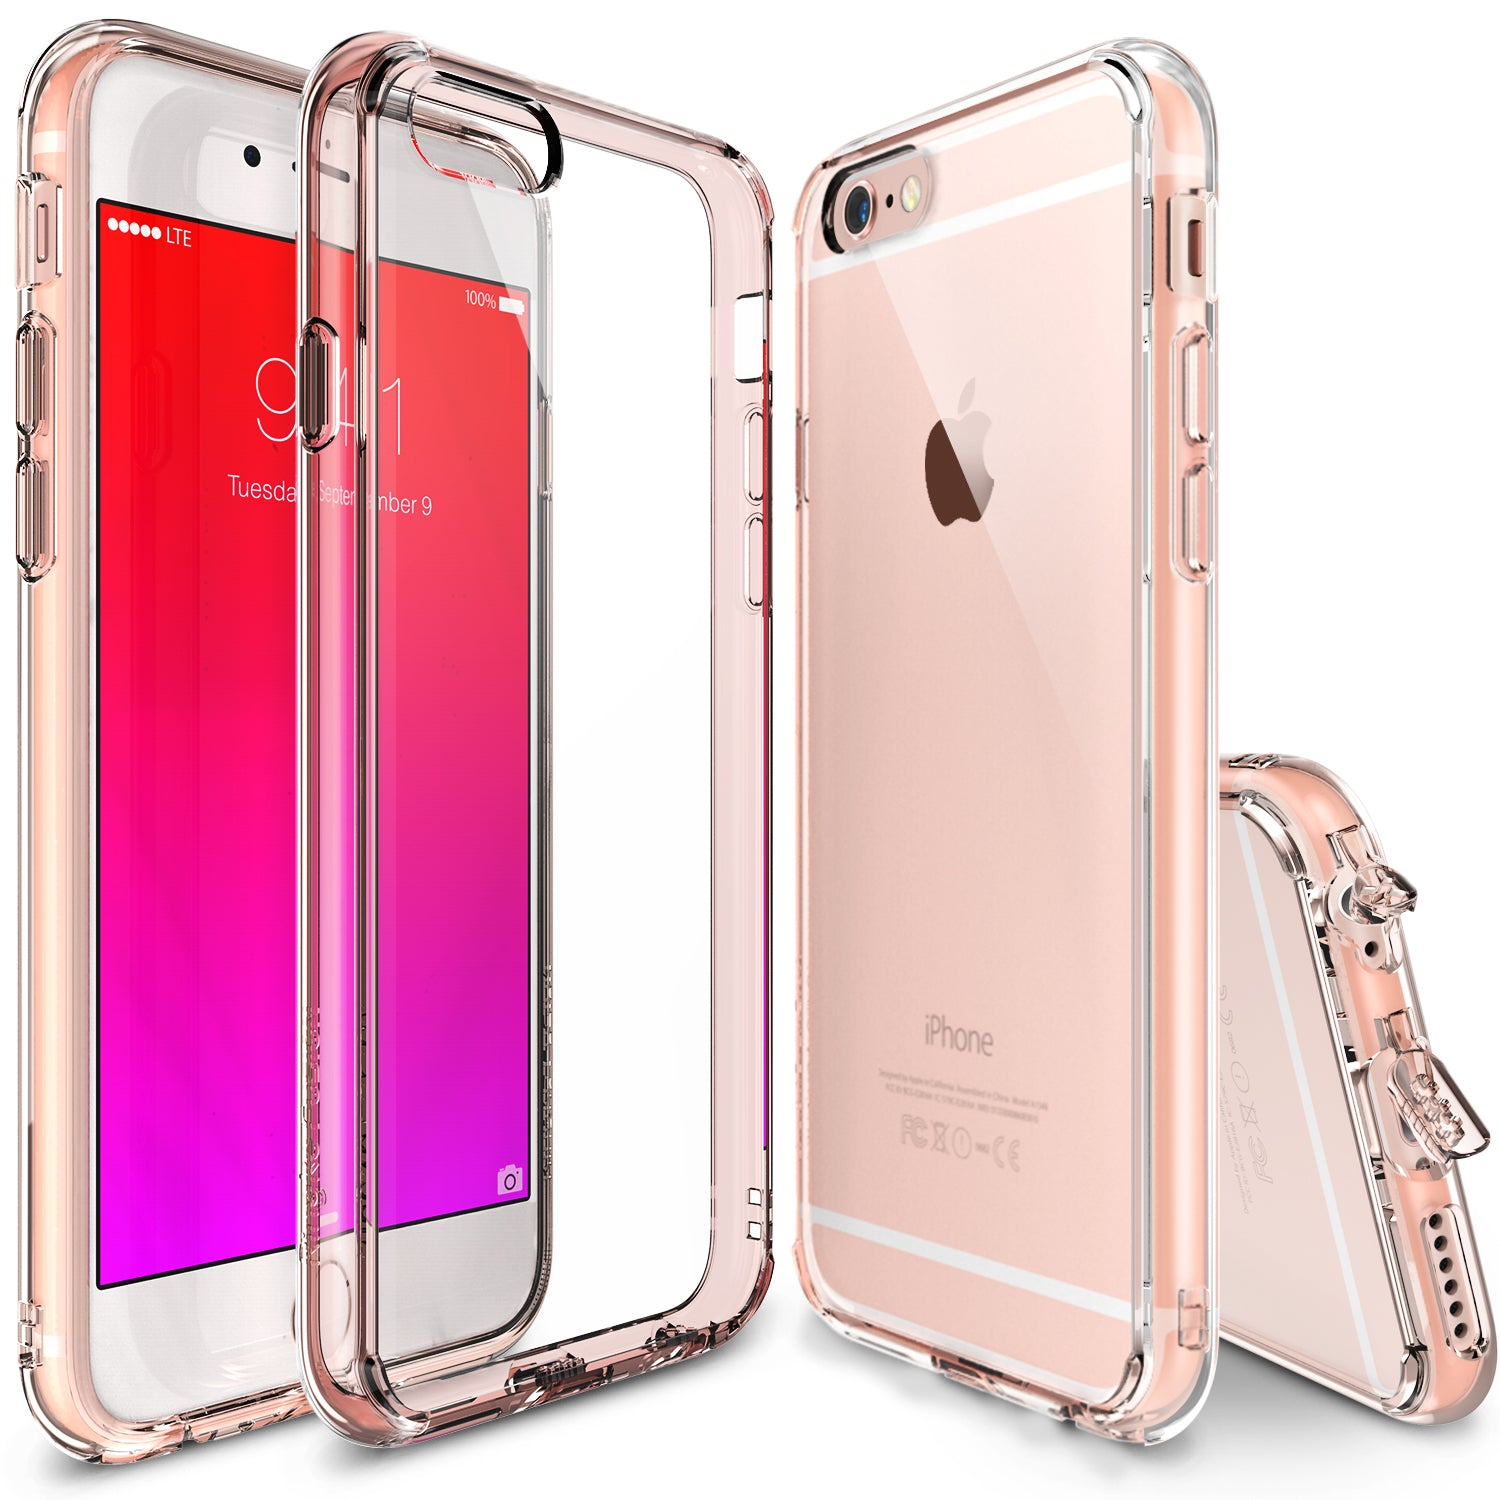 ringke fusion transparent clear back protective bumper case cover for iphone 6 plus 6s plus rose gold